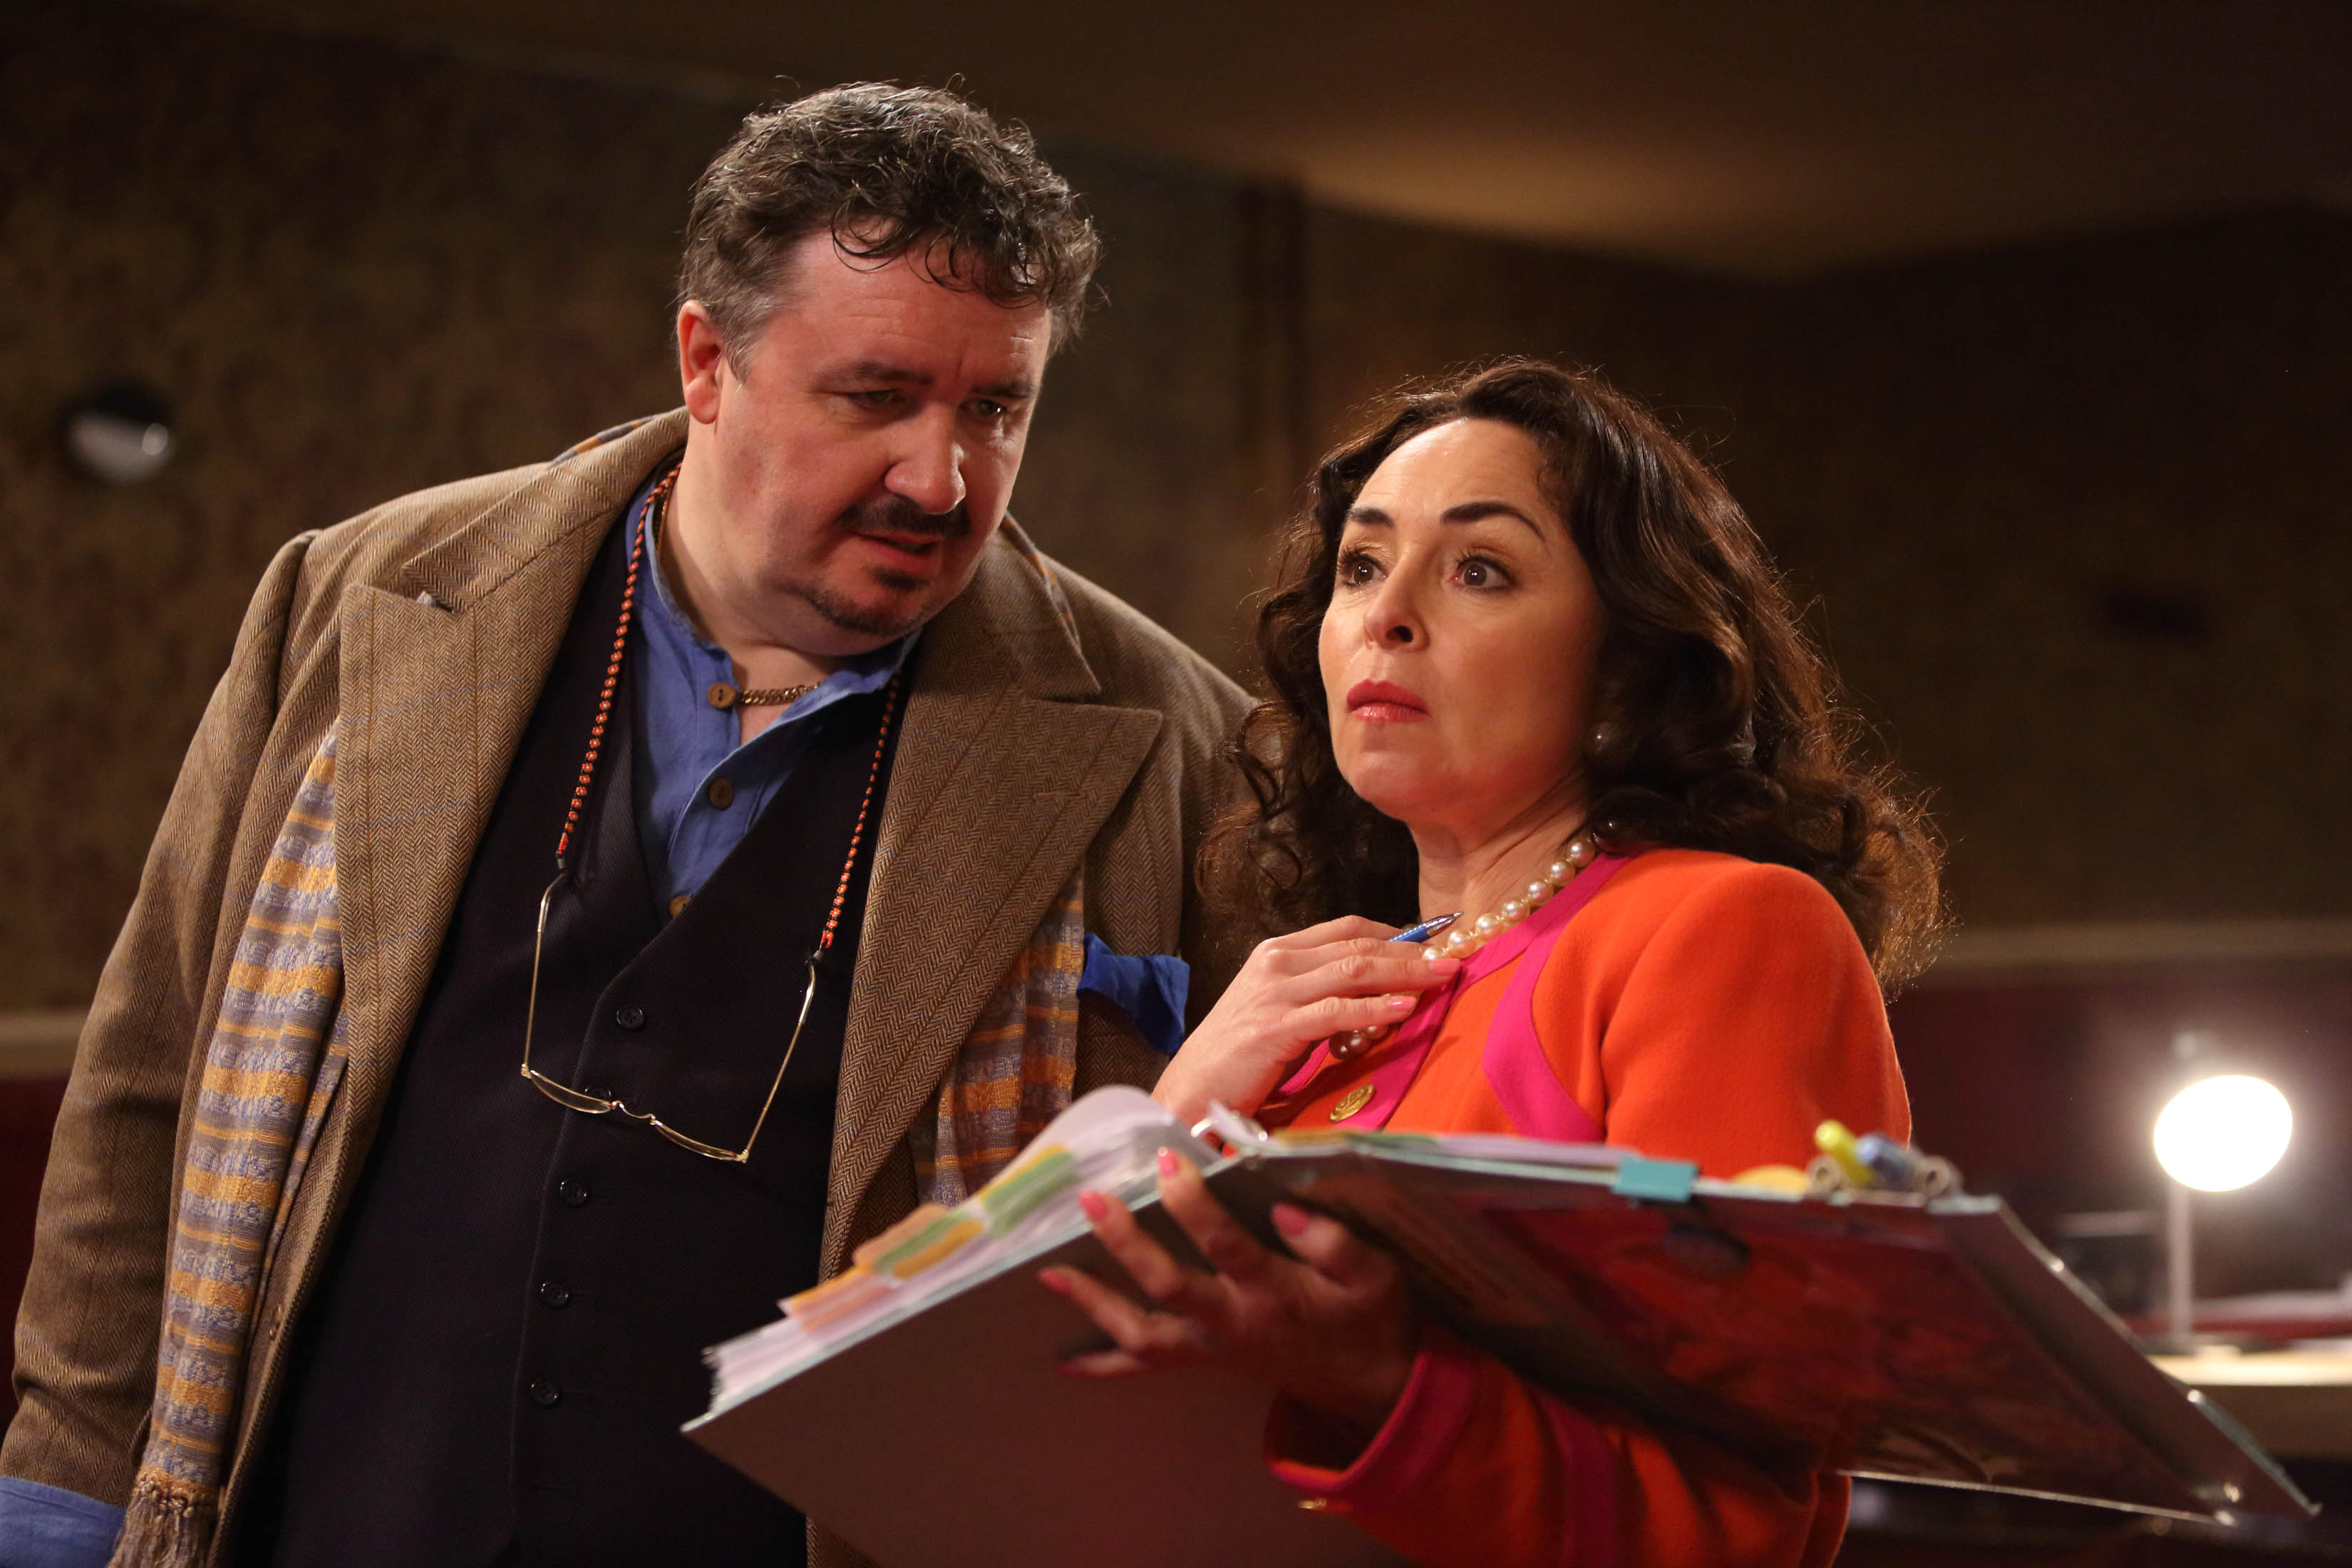 Mark Benton and Sam Spiro in Panto!